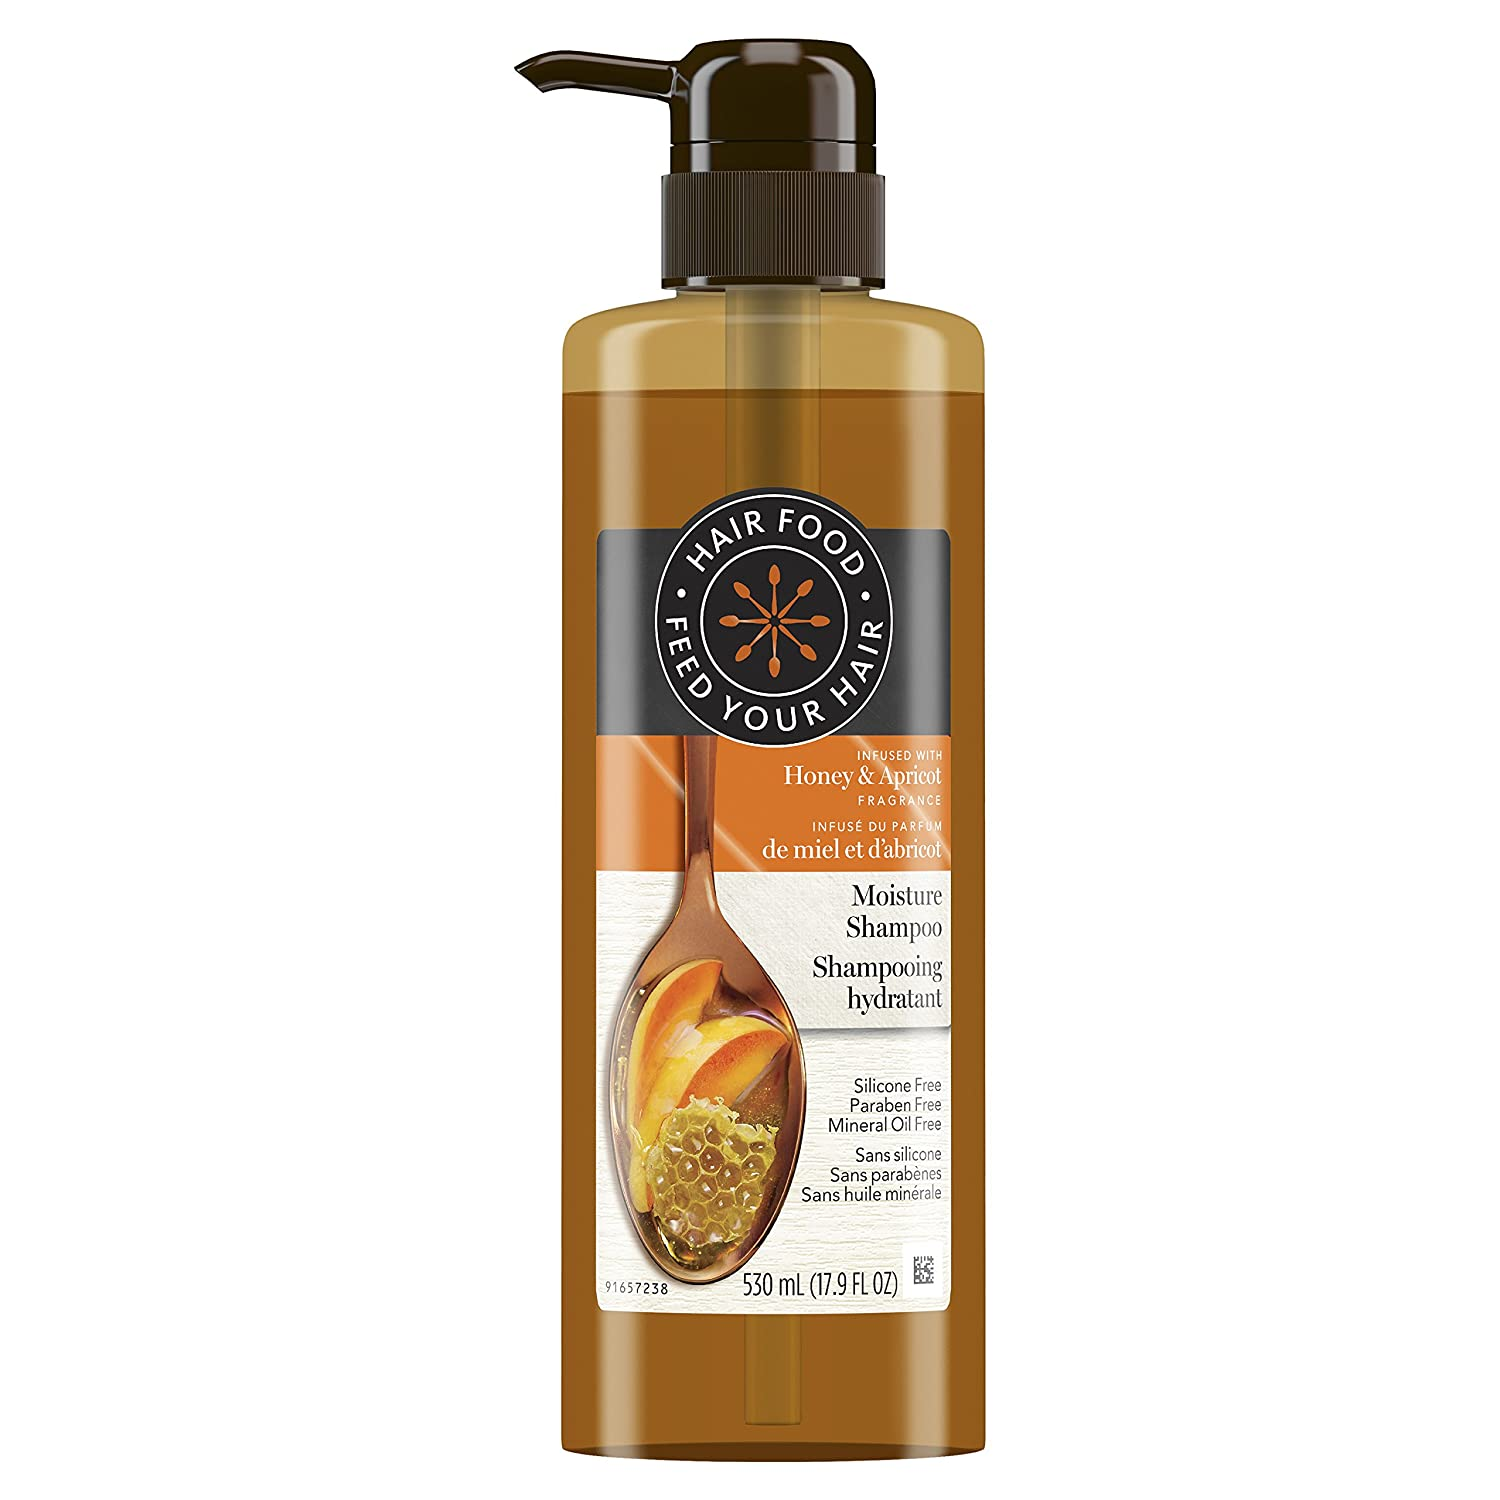 Hair Food Moisture Conditioner Infused With Honey Apricot Fragrance, 530ml Procter and Gamble